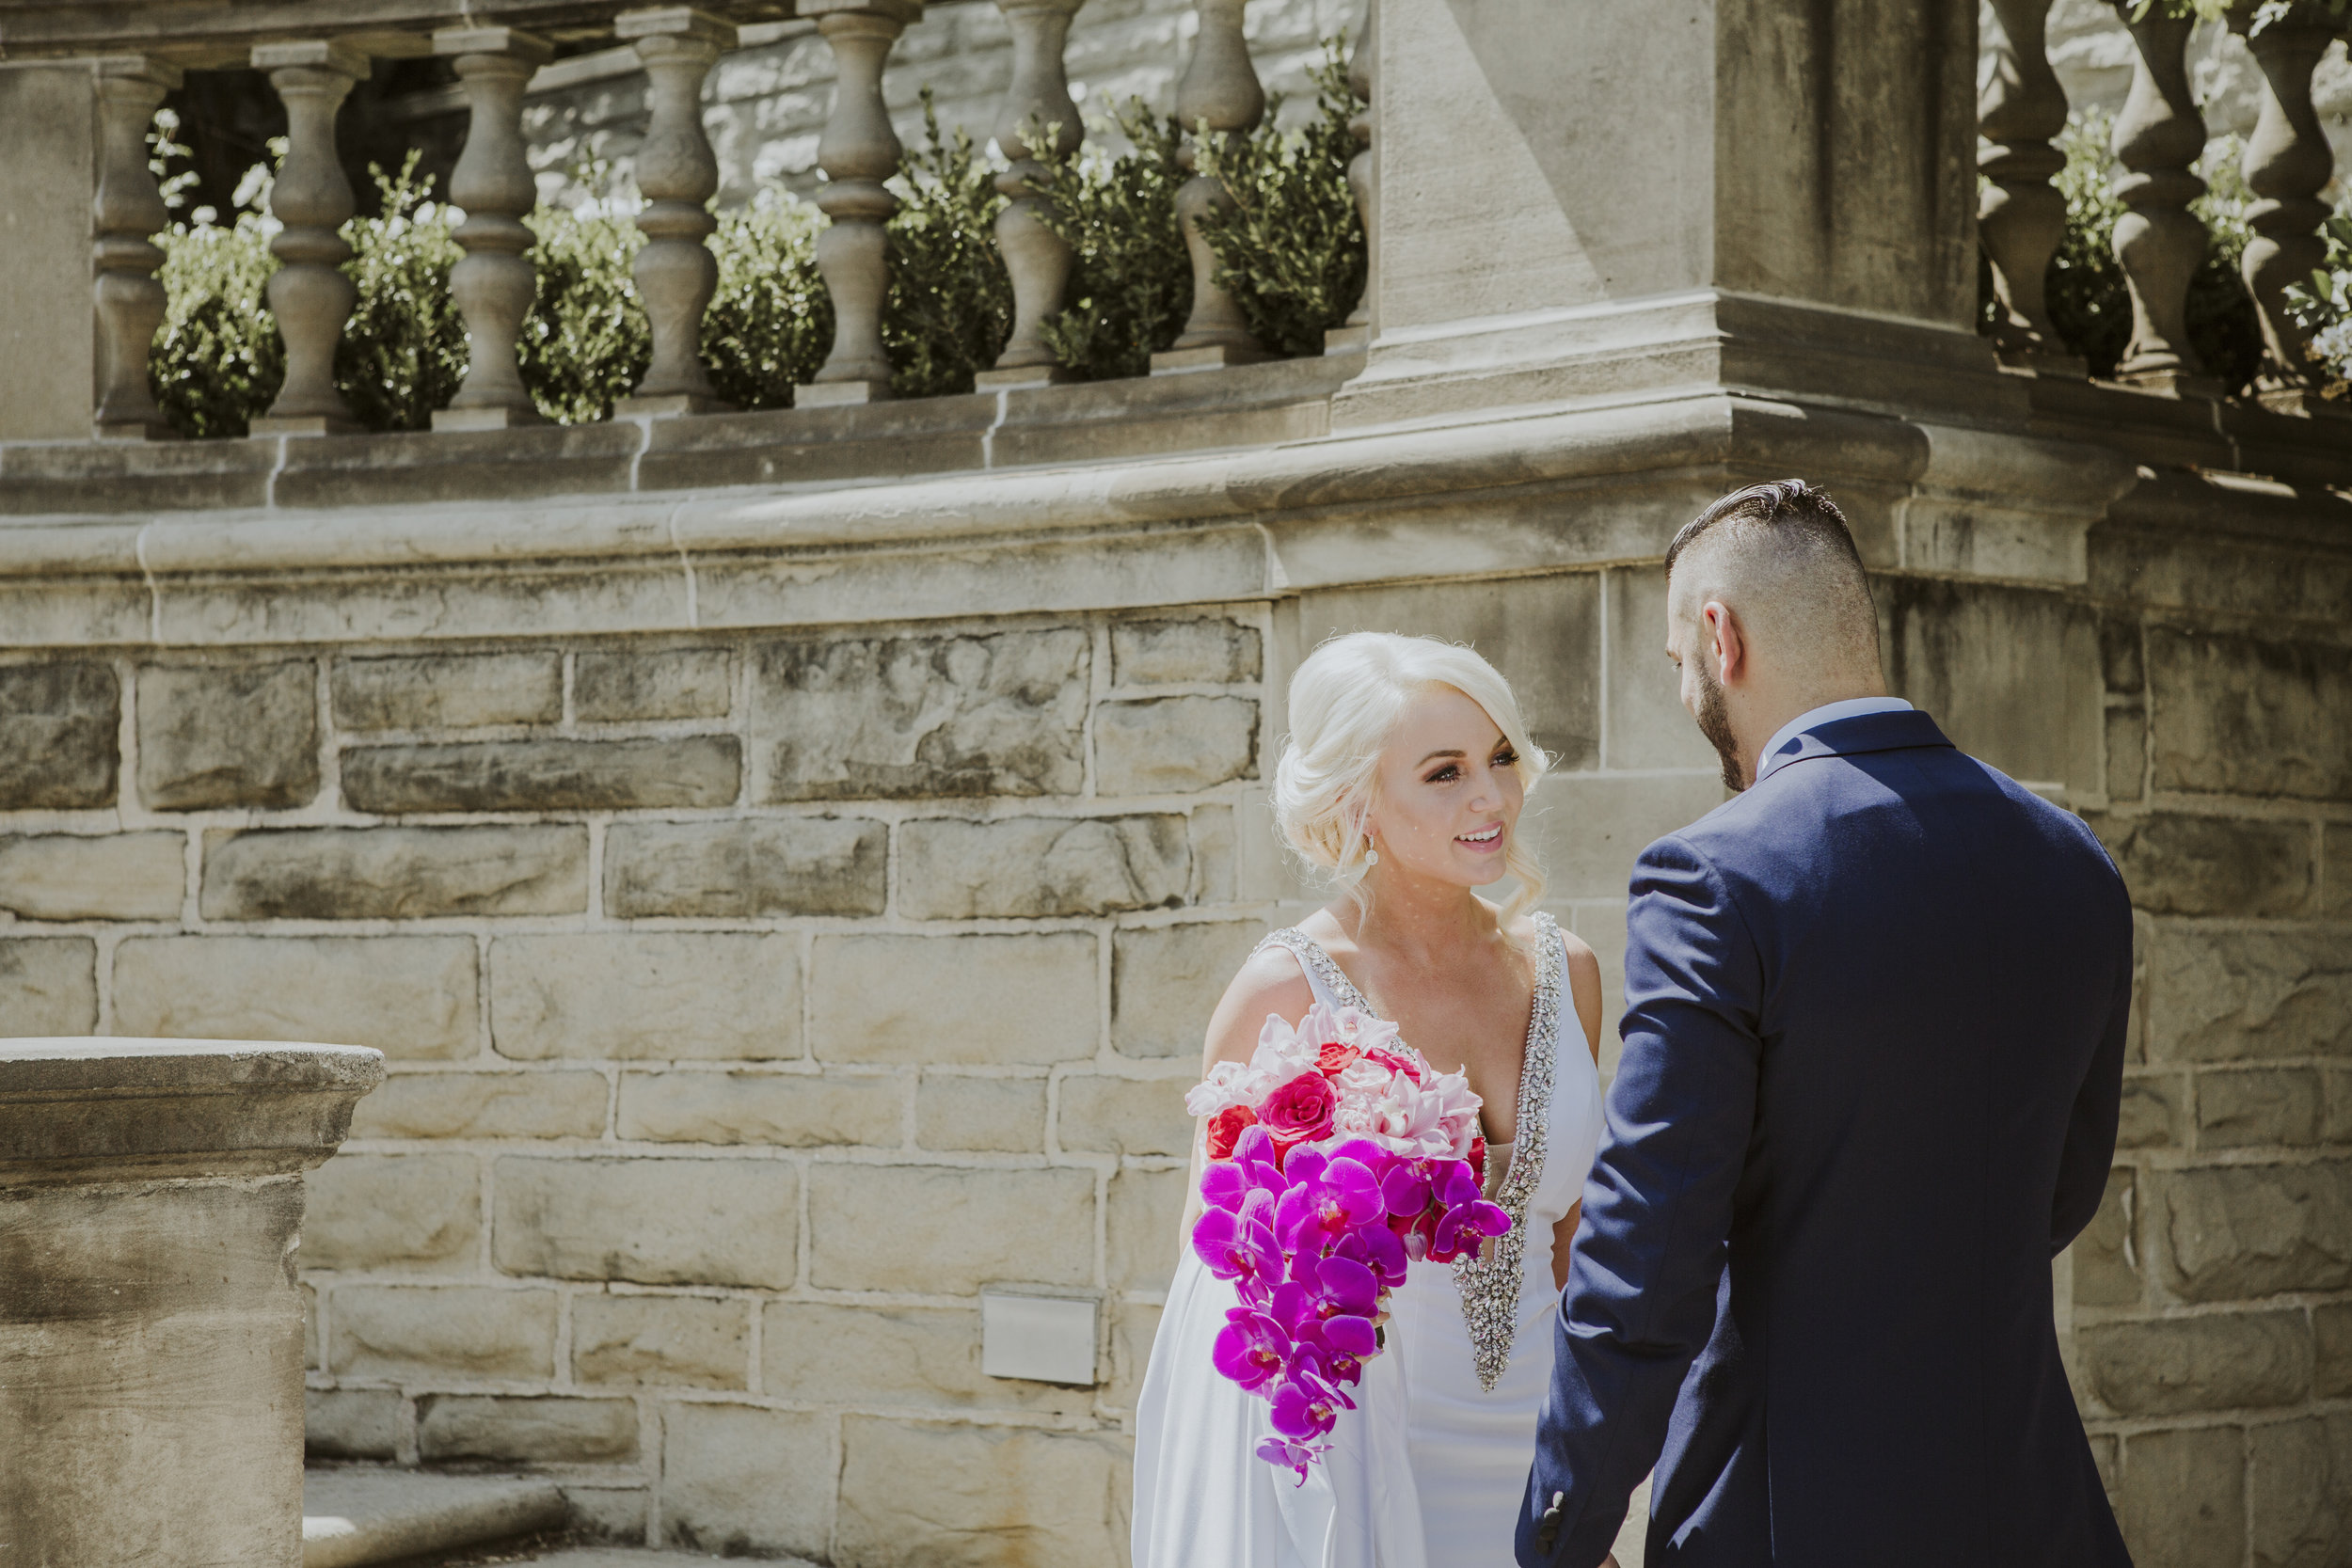 lawedding_greystonemansion_sidneykraemer_high-64.jpg